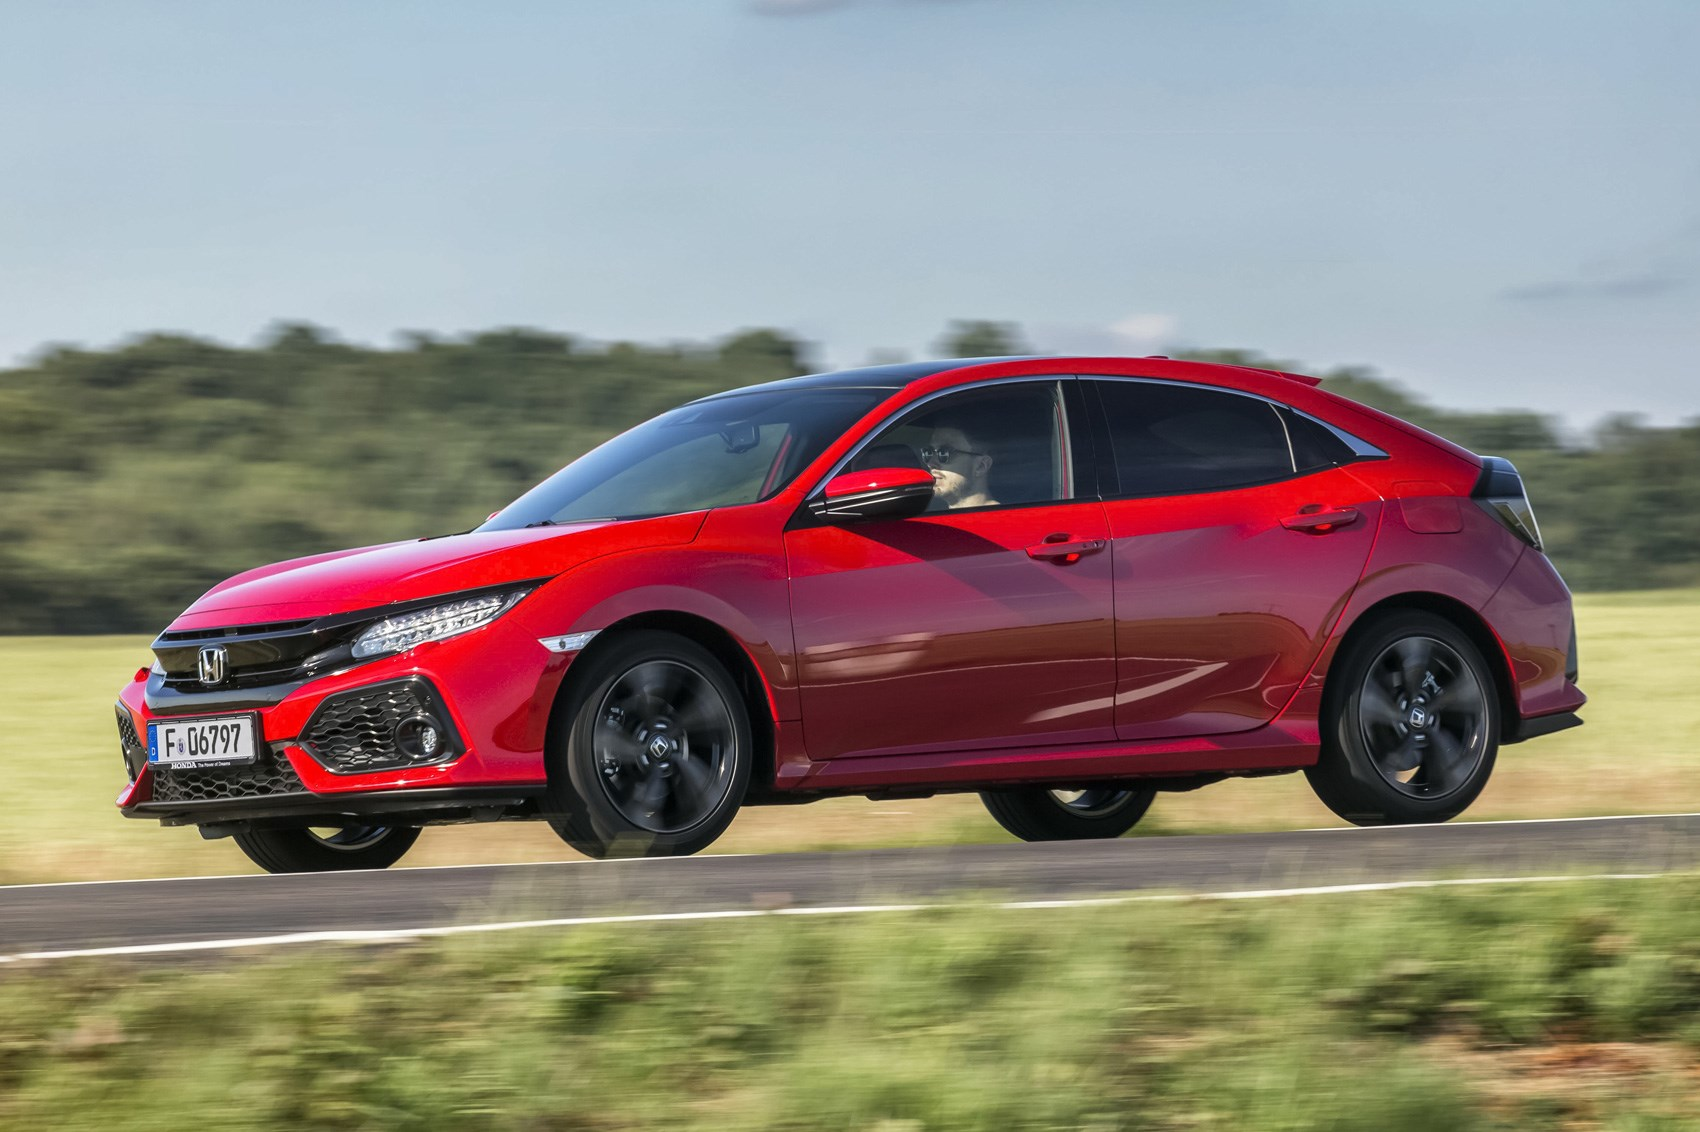 Honda Civic 10Th Gen >> Oil Burning Civics Honda Introduces Diesel Engine To 10th